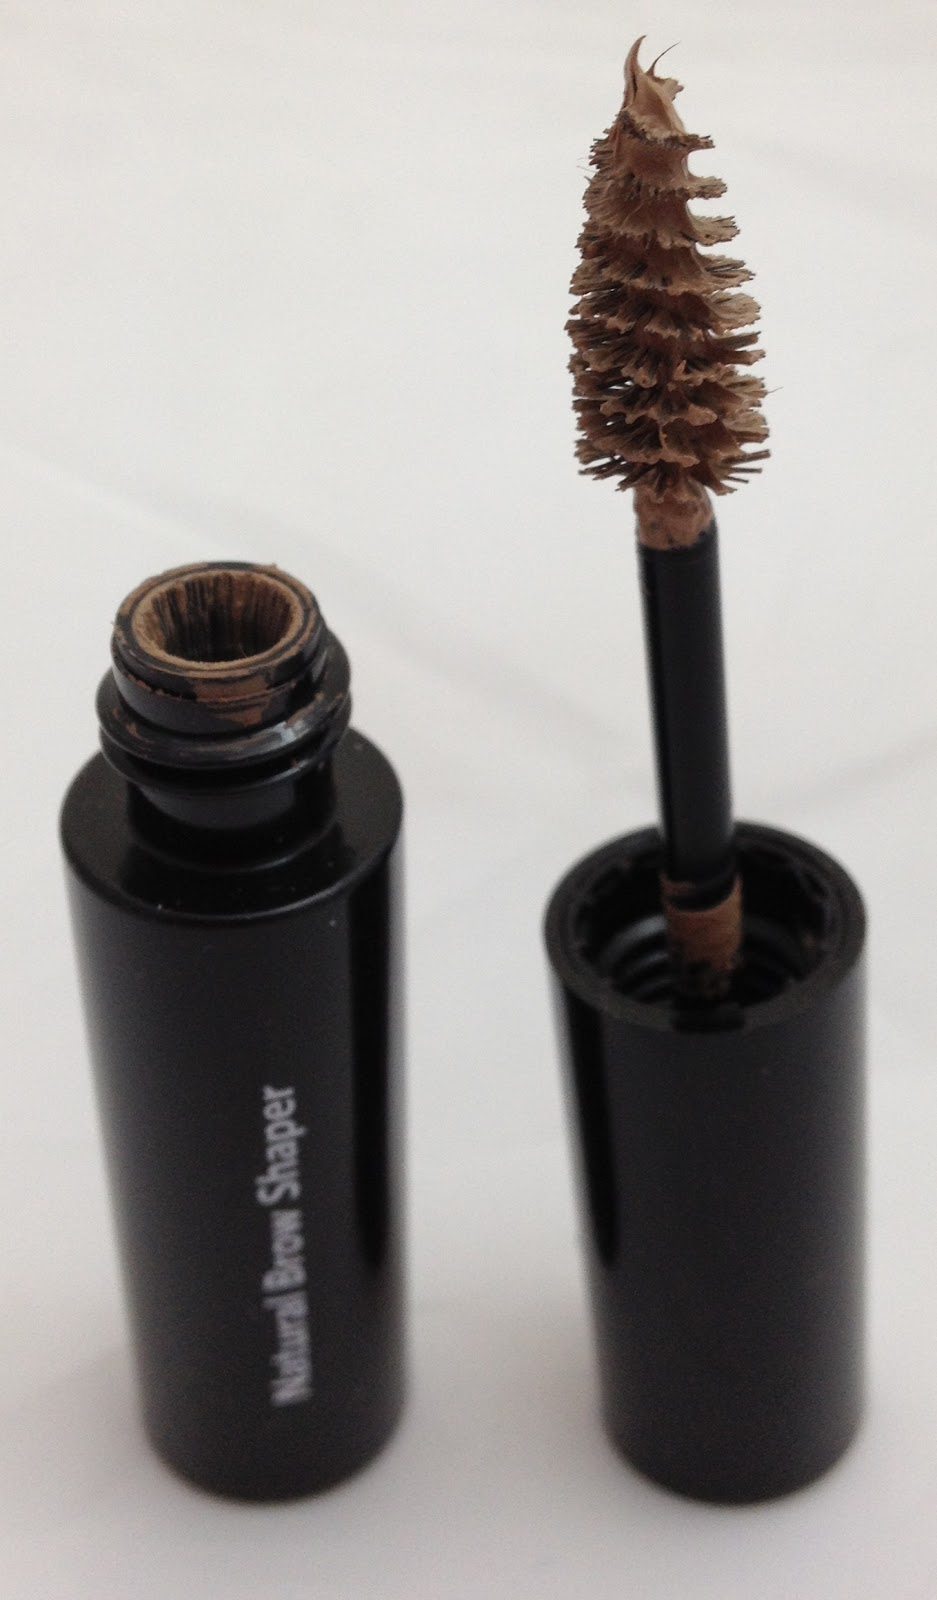 Bobbi Brown Natural Brow Shaper And Hair Touch Up In Blonde Beauty Geek Uk